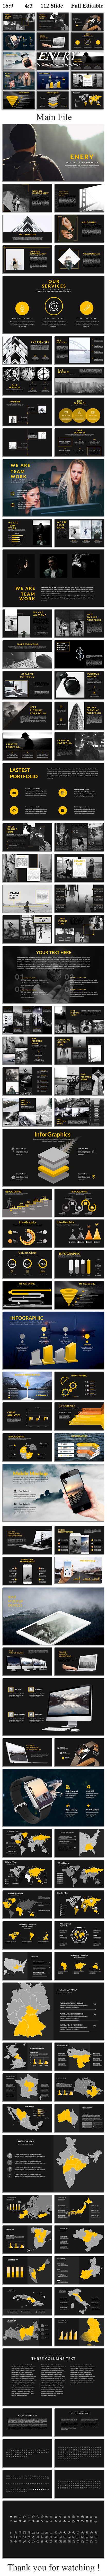 Enery - Creative PowerPoint Template - Creative PowerPoint Templates